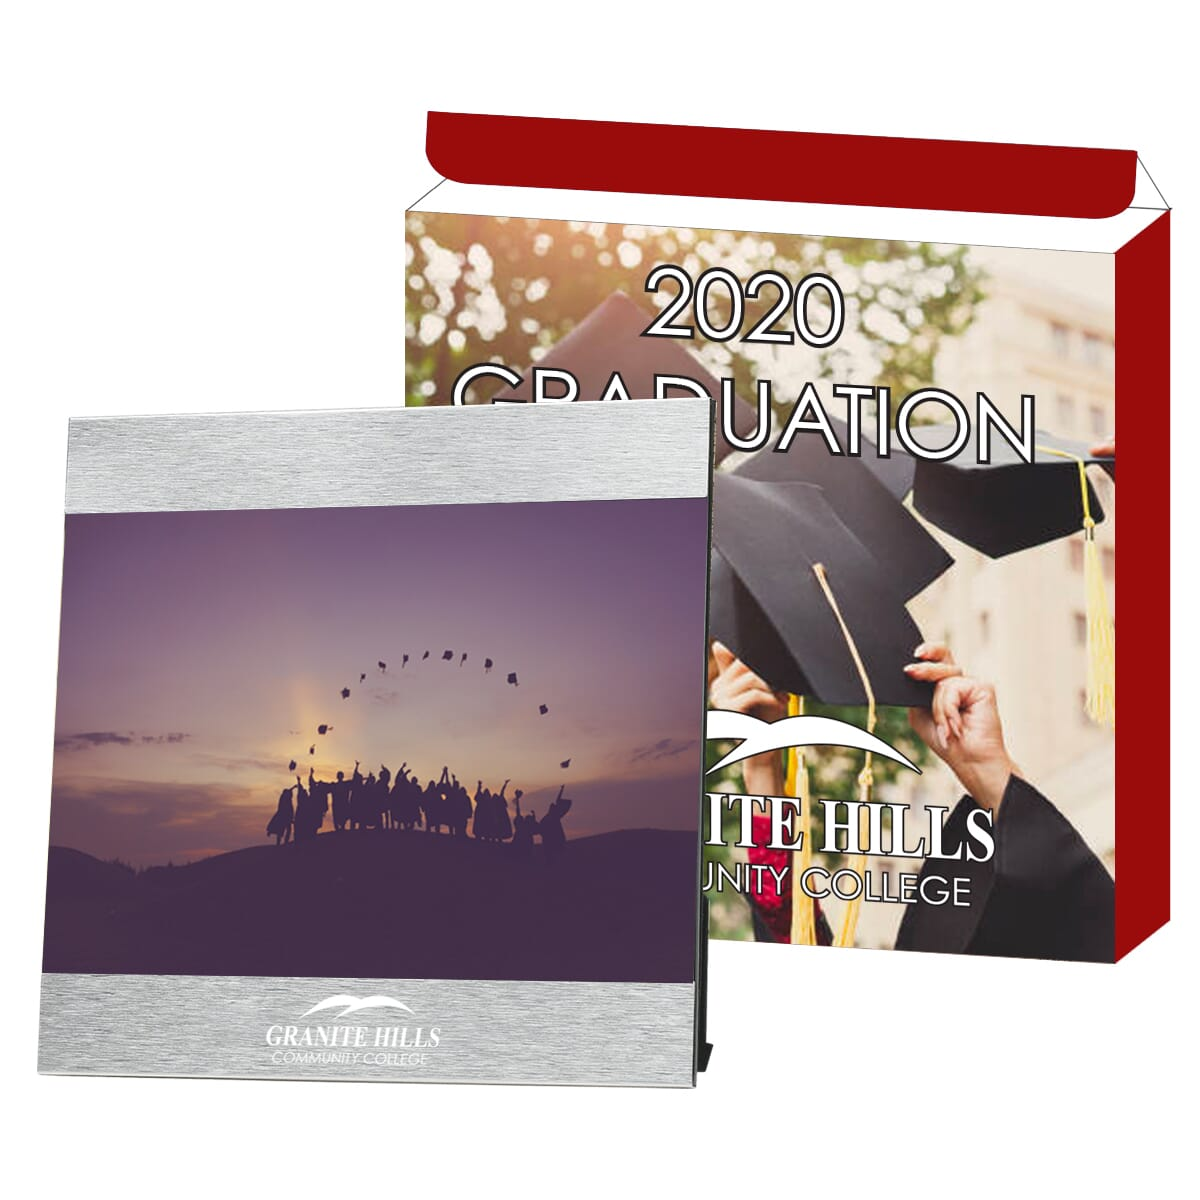 Photo frame and custom box for graduation